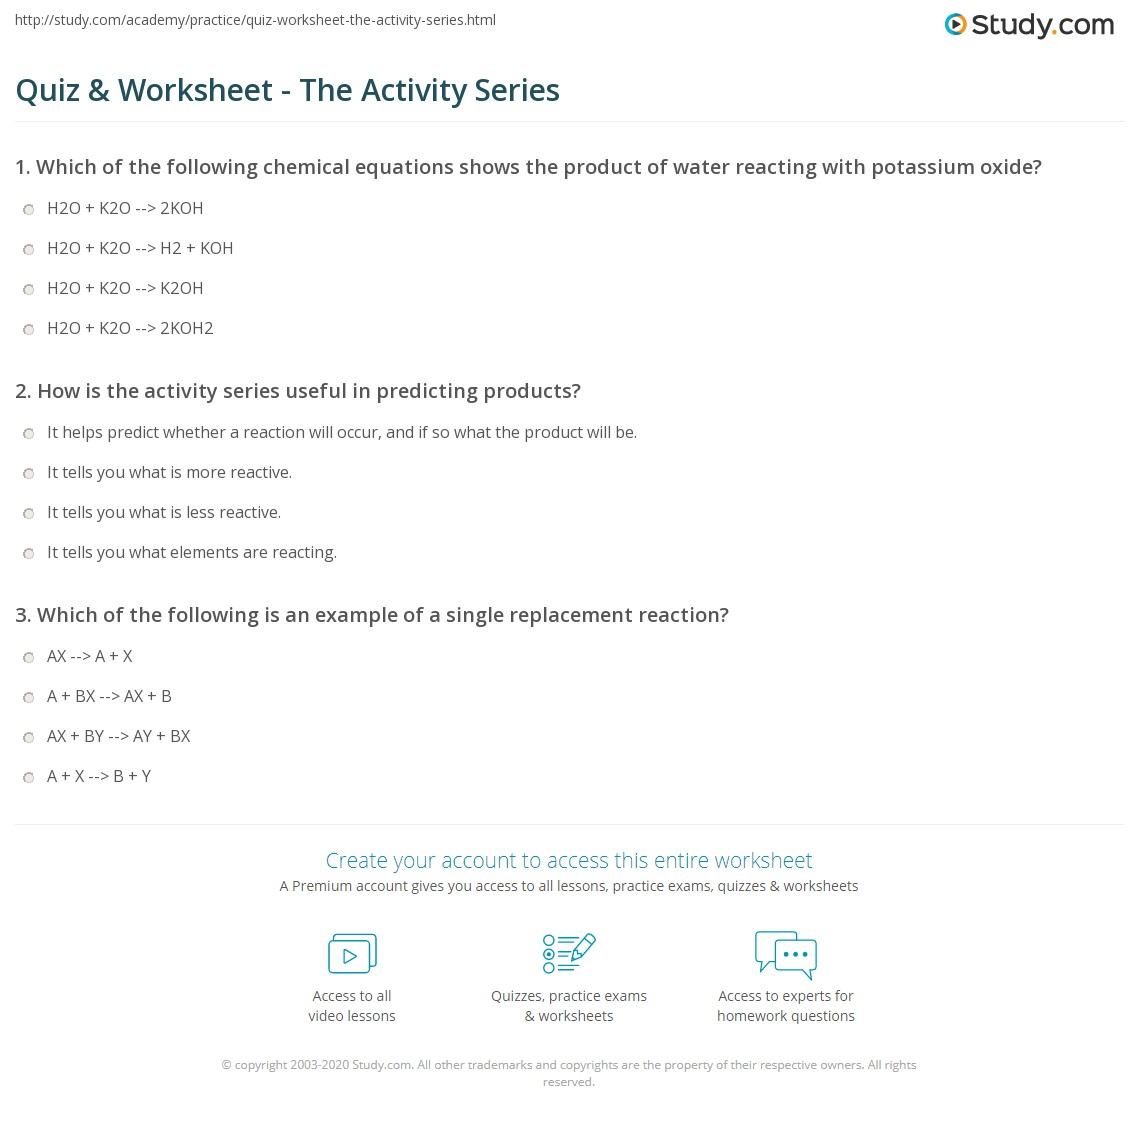 Aldiablosus  Nice Quiz Amp Worksheet  The Activity Series  Studycom With Inspiring Print The Activity Series Predicting Products Of Single Displacement Reactions Worksheet With Alluring Nd Grade Reading Printable Worksheets Also Calculating Area And Perimeter Worksheets In Addition Fraction Decimal Worksheet And Reading Worksheets For Rd Graders As Well As Correct The Sentence Worksheets Additionally Animals Worksheet From Studycom With Aldiablosus  Inspiring Quiz Amp Worksheet  The Activity Series  Studycom With Alluring Print The Activity Series Predicting Products Of Single Displacement Reactions Worksheet And Nice Nd Grade Reading Printable Worksheets Also Calculating Area And Perimeter Worksheets In Addition Fraction Decimal Worksheet From Studycom